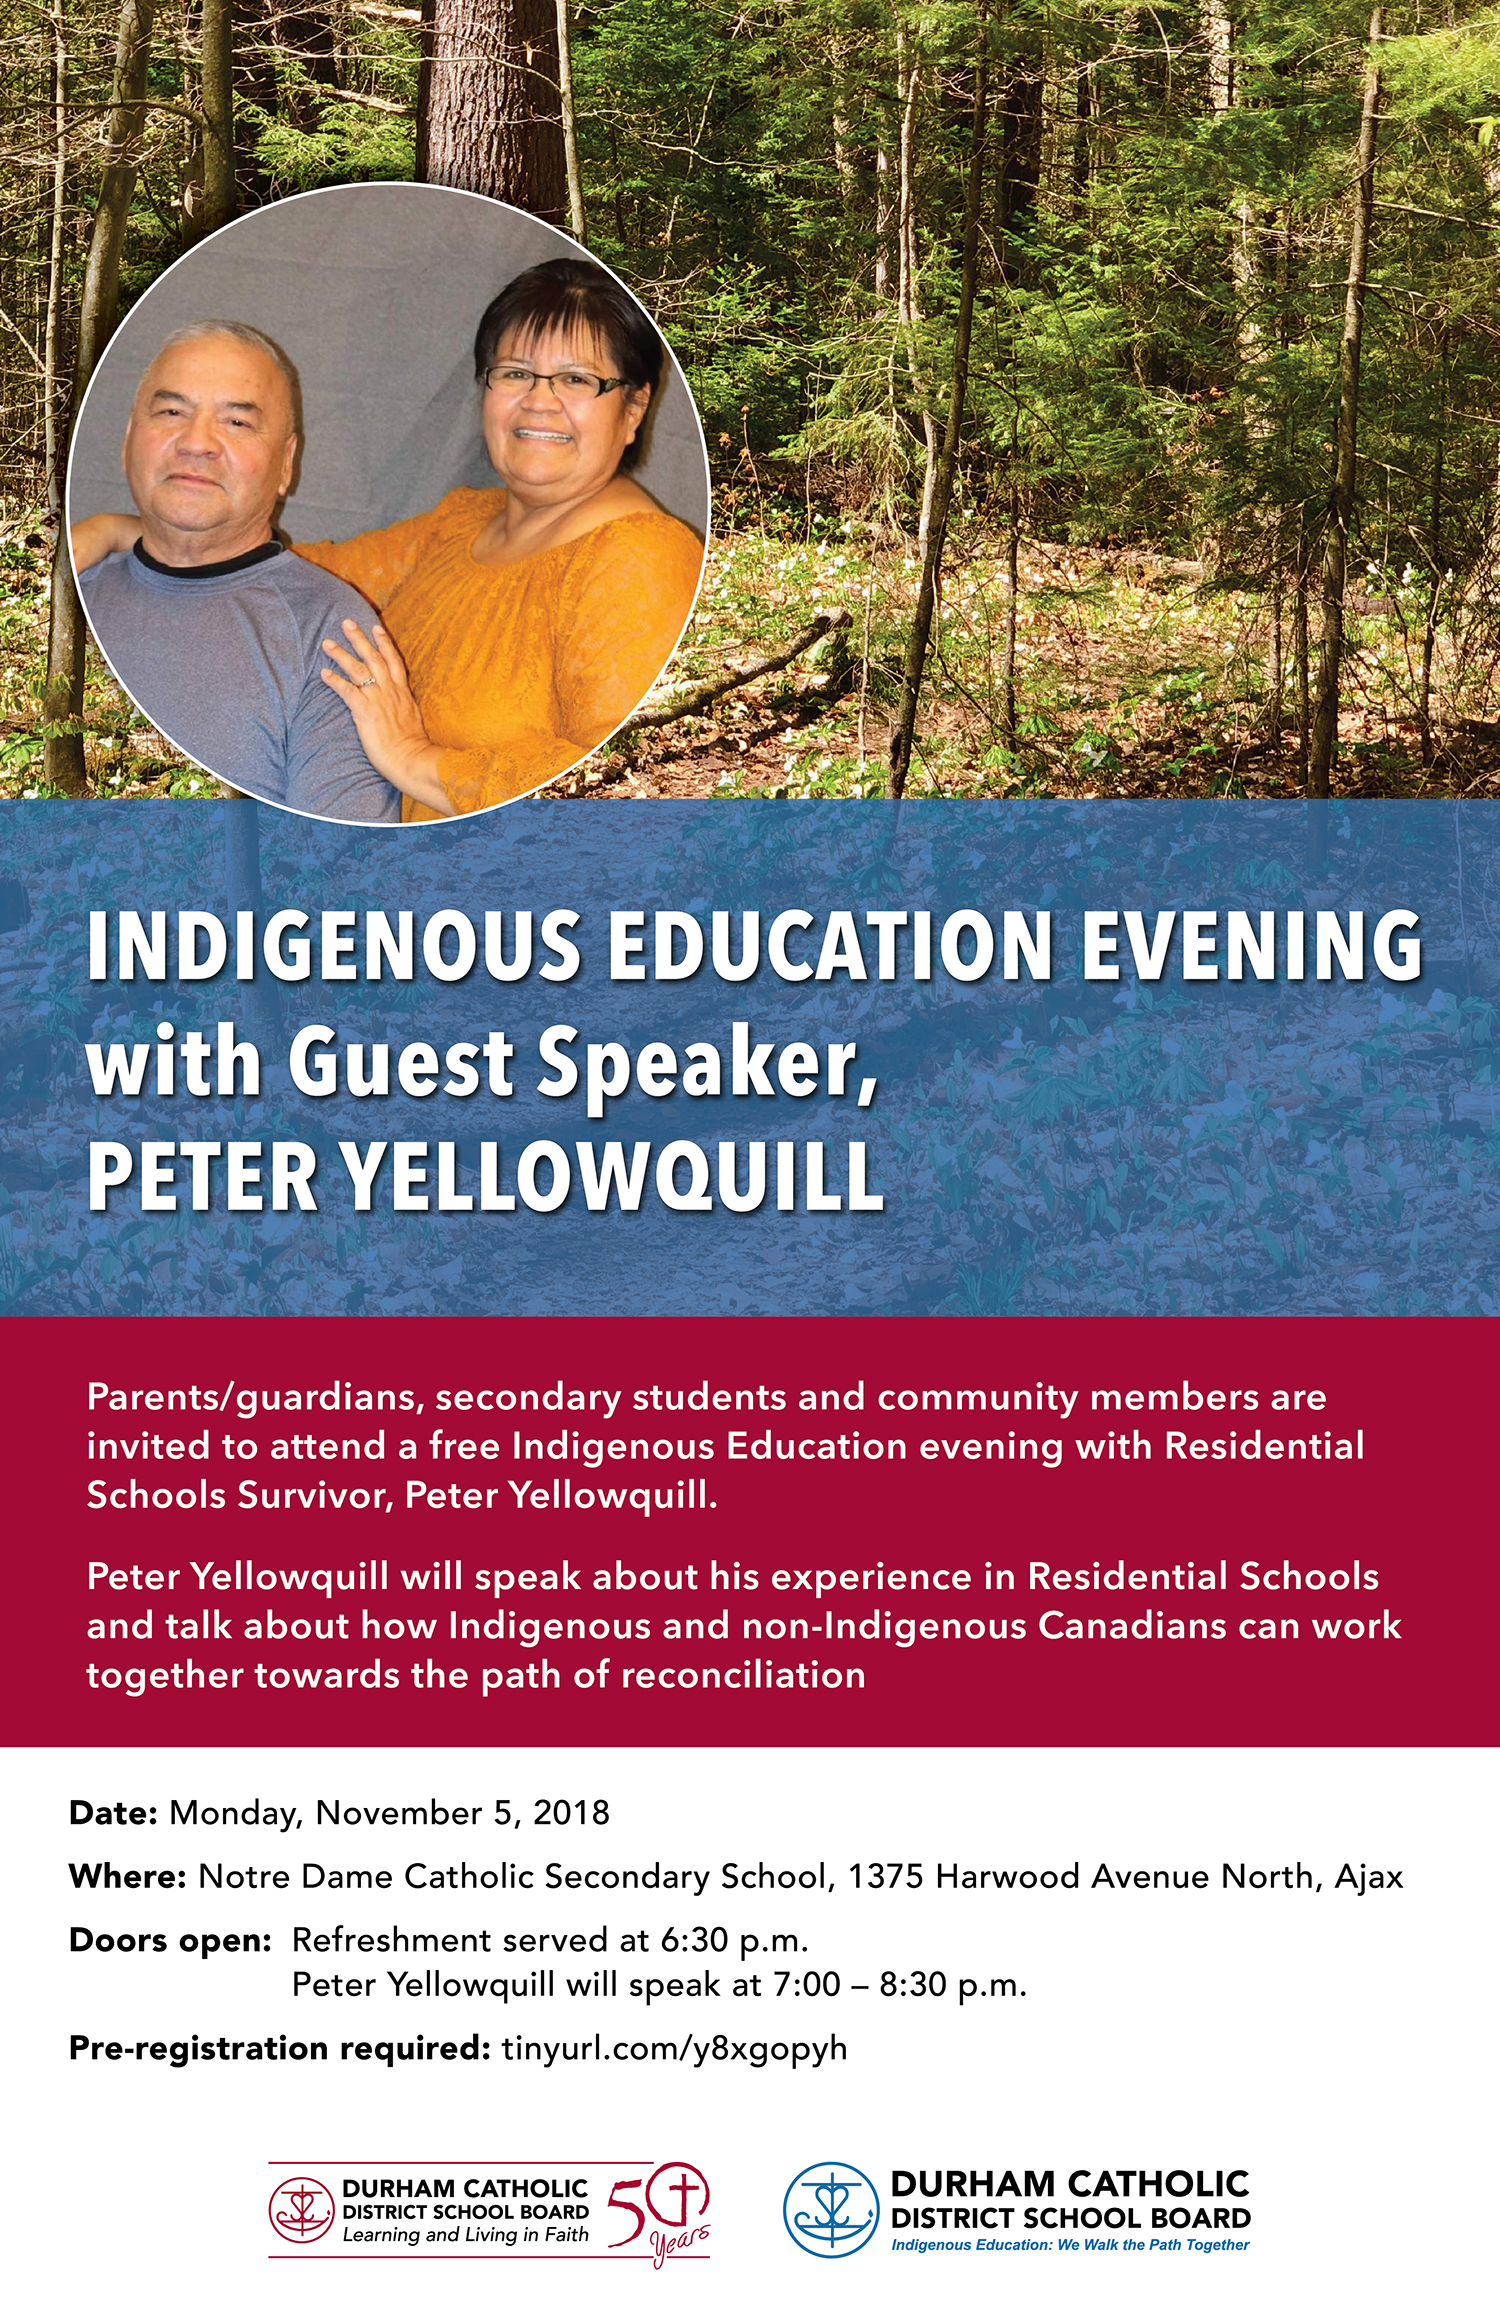 poster promoting evening presentation with Peter Yellowquill